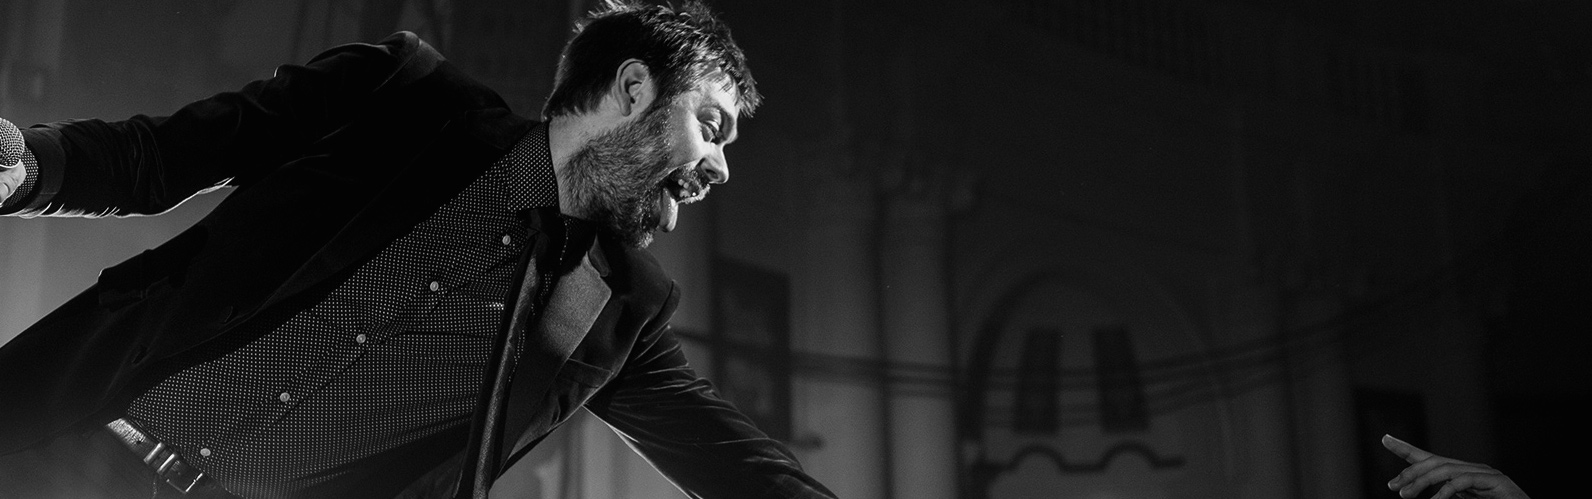 Tom Meighan, Kasabian, Brixton, December 2014